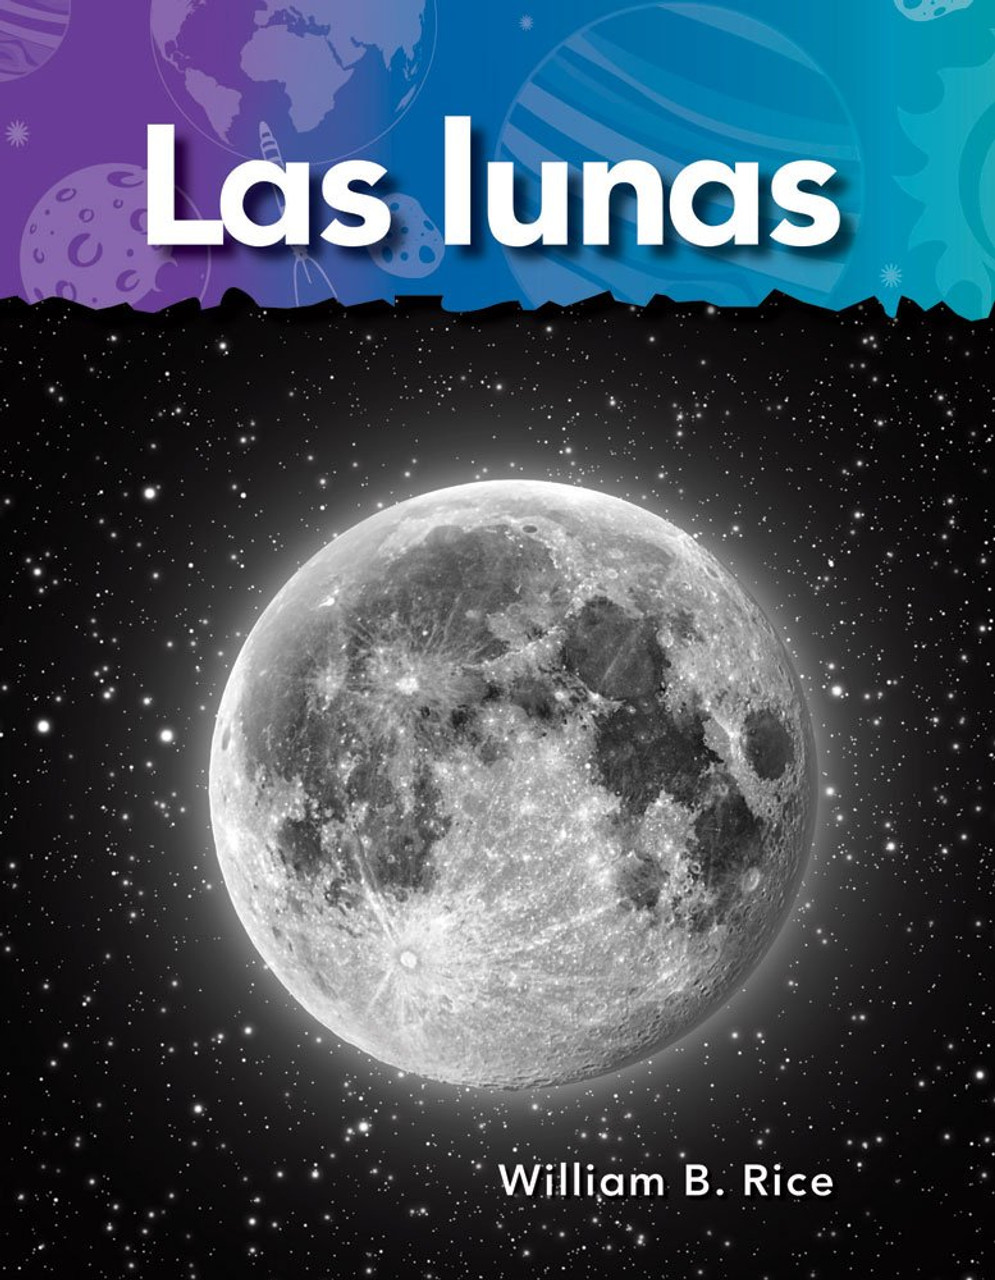 <p>There is a bright light in the night sky. Sometimes it is round like a ball, sometimes it is a crescent, and sometimes it is not there at all! What is this strange and changing thing? It is the moon, of course! Read all about our moon and the moons surrounding other planets in this Spanish-translated book.</p>